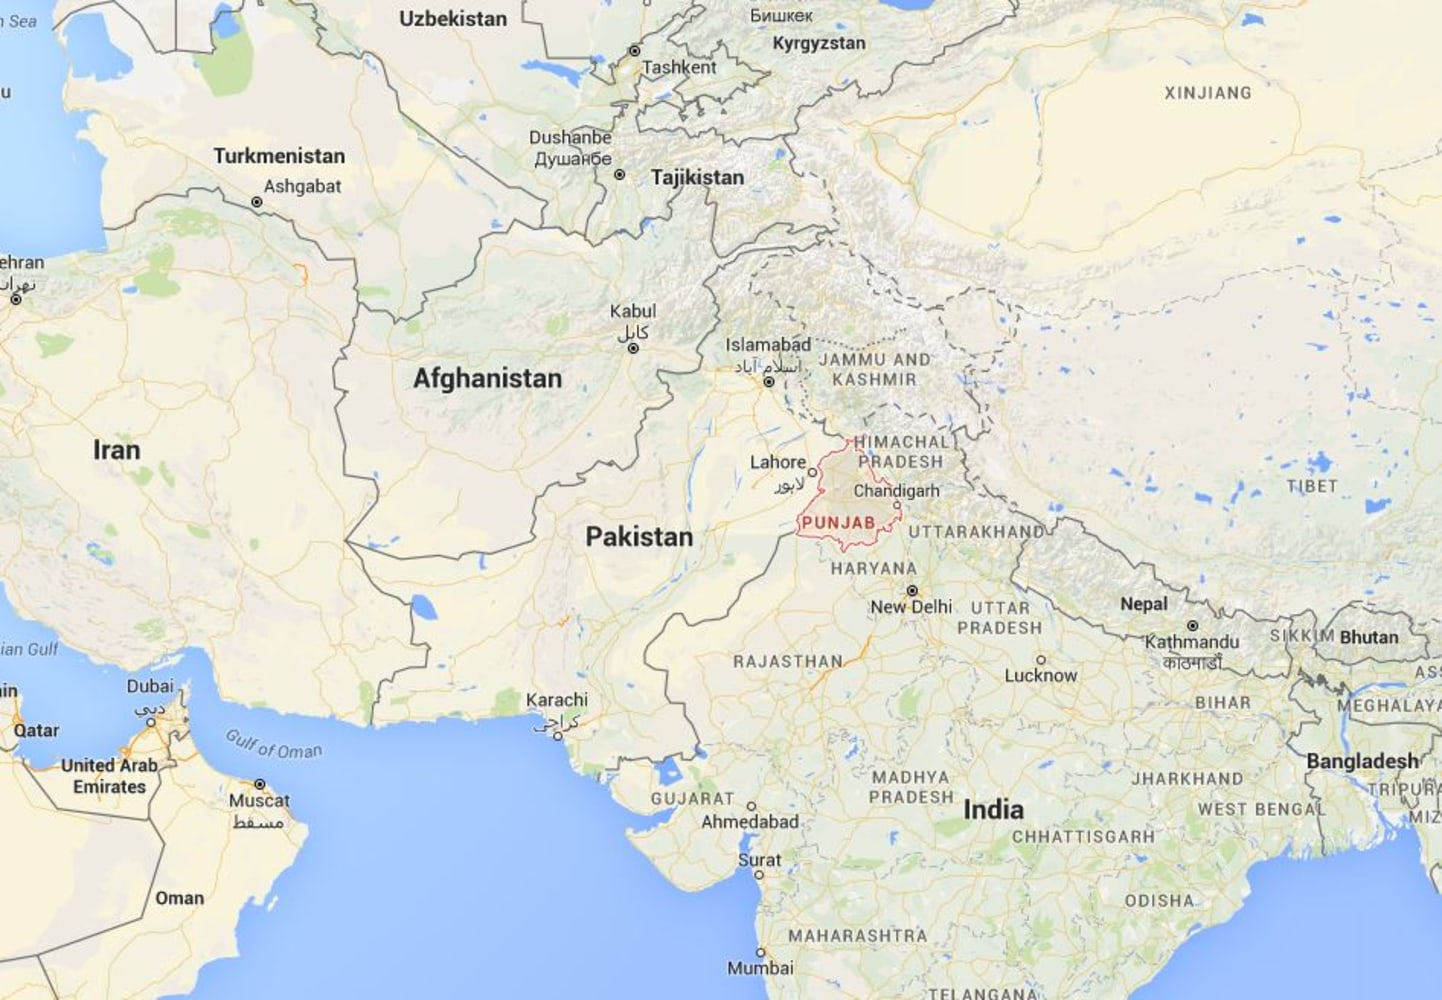 India installs laser walls at border with pakistan a map showing indias punjab state which borders pakistan google maps lasers beamed over rivers and hills will set off an alarm and alert the indian sciox Image collections